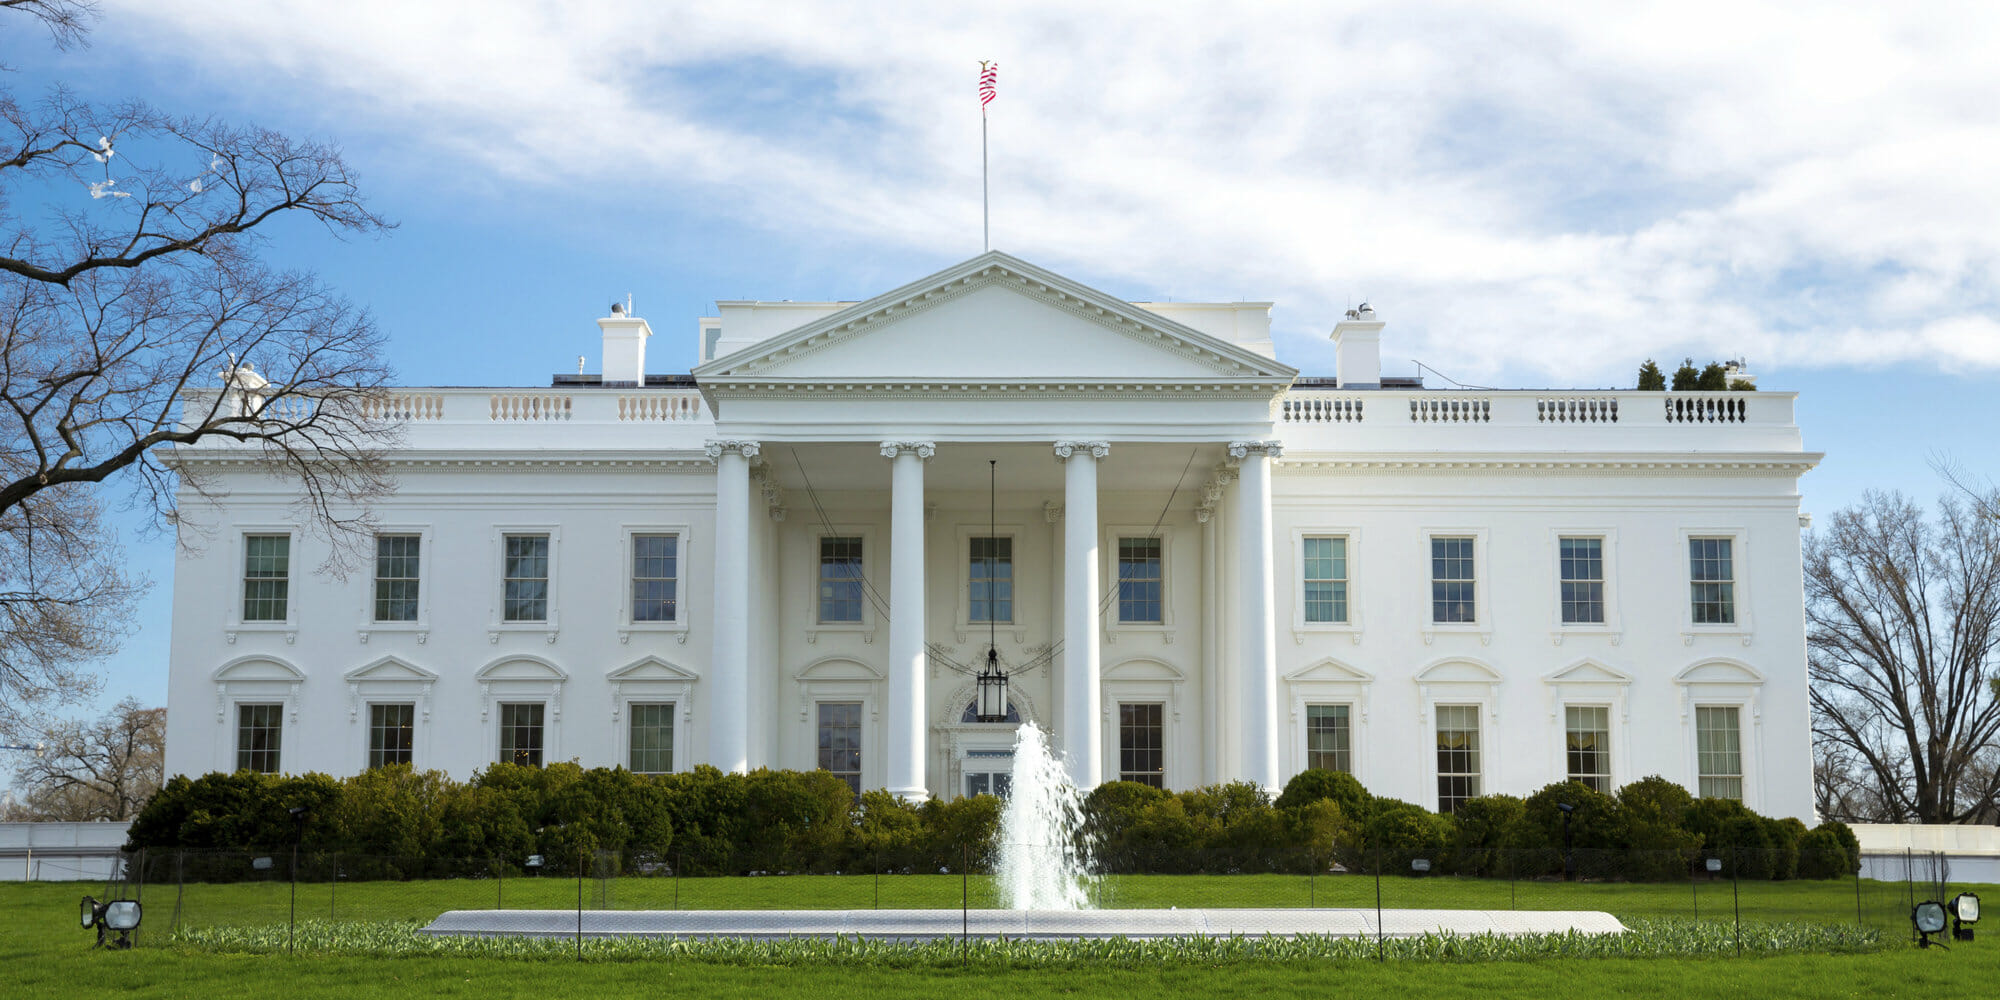 The front of the White House. Public domain image.